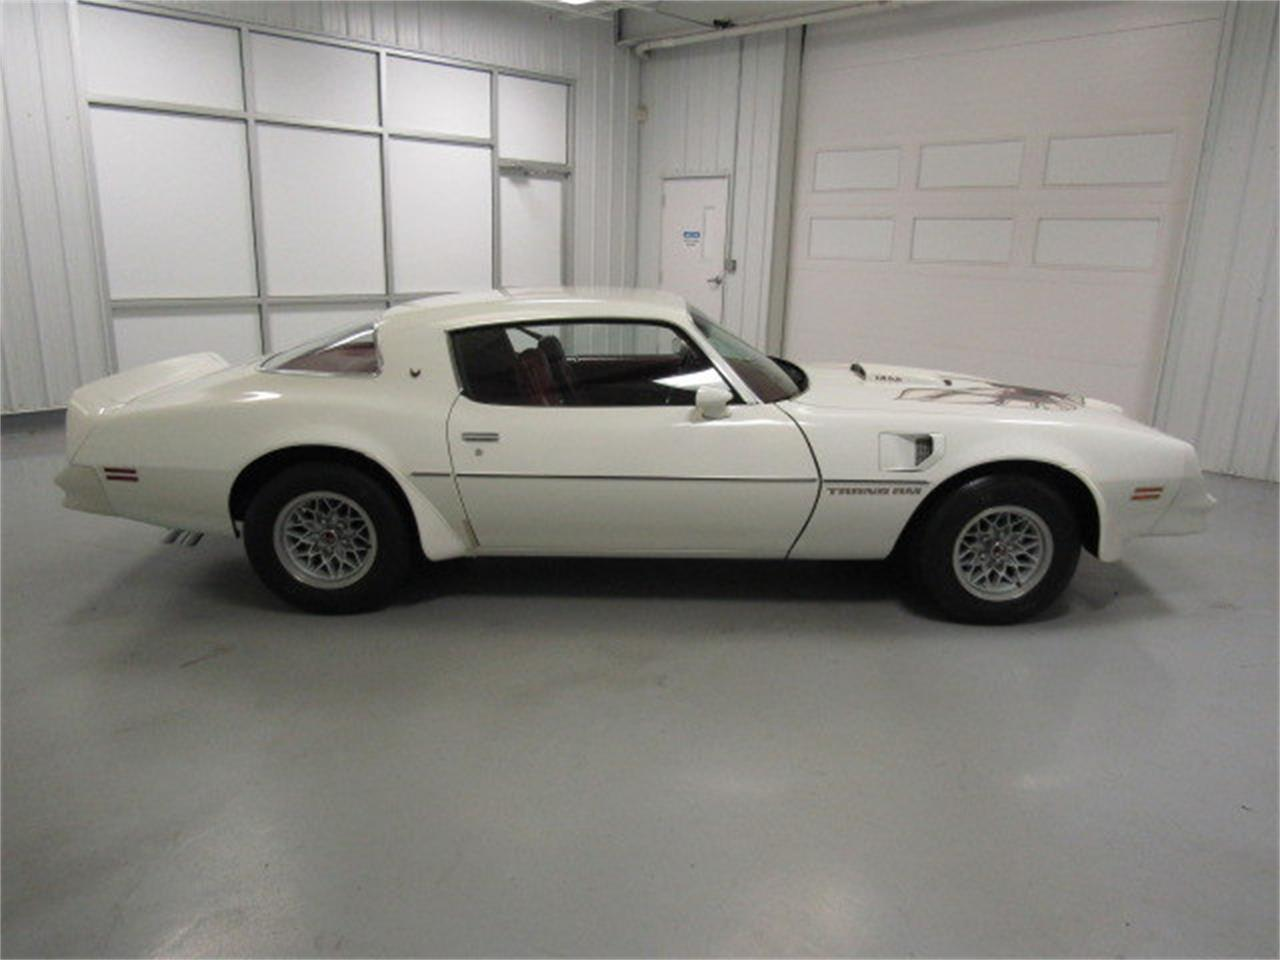 Large Picture of 1978 Pontiac Firebird located in Christiansburg Virginia - $39,000.00 Offered by Duncan Imports & Classic Cars - JLC2